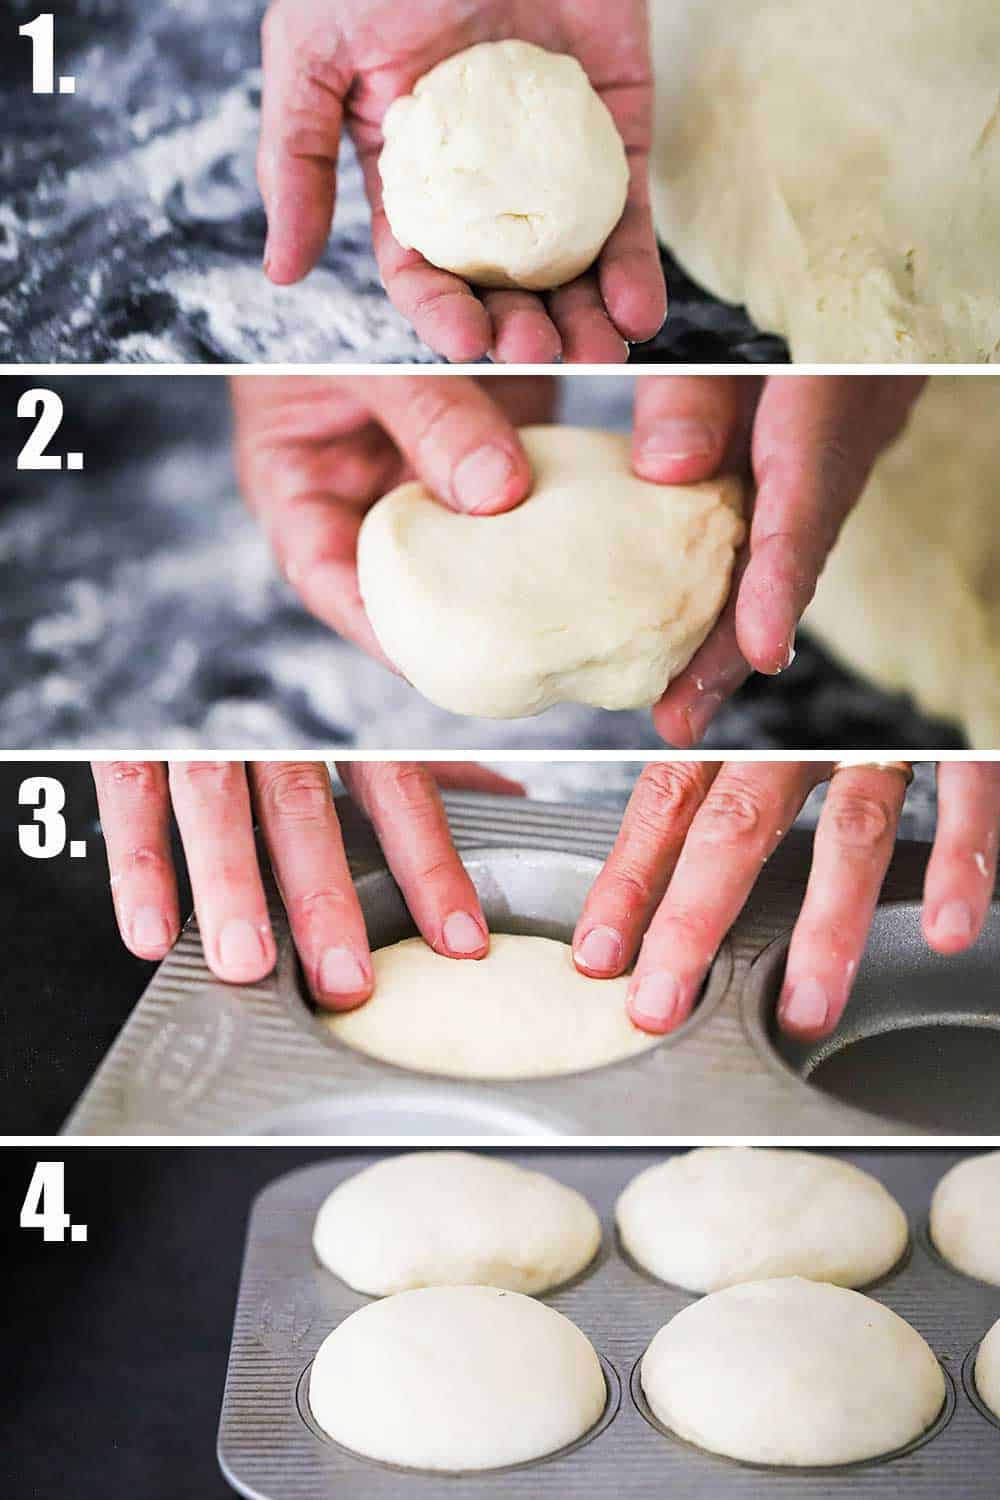 A person forming dough into a ball, and then flattening it, and the placing it into a bun pan and then viewing it after the dough has risen.